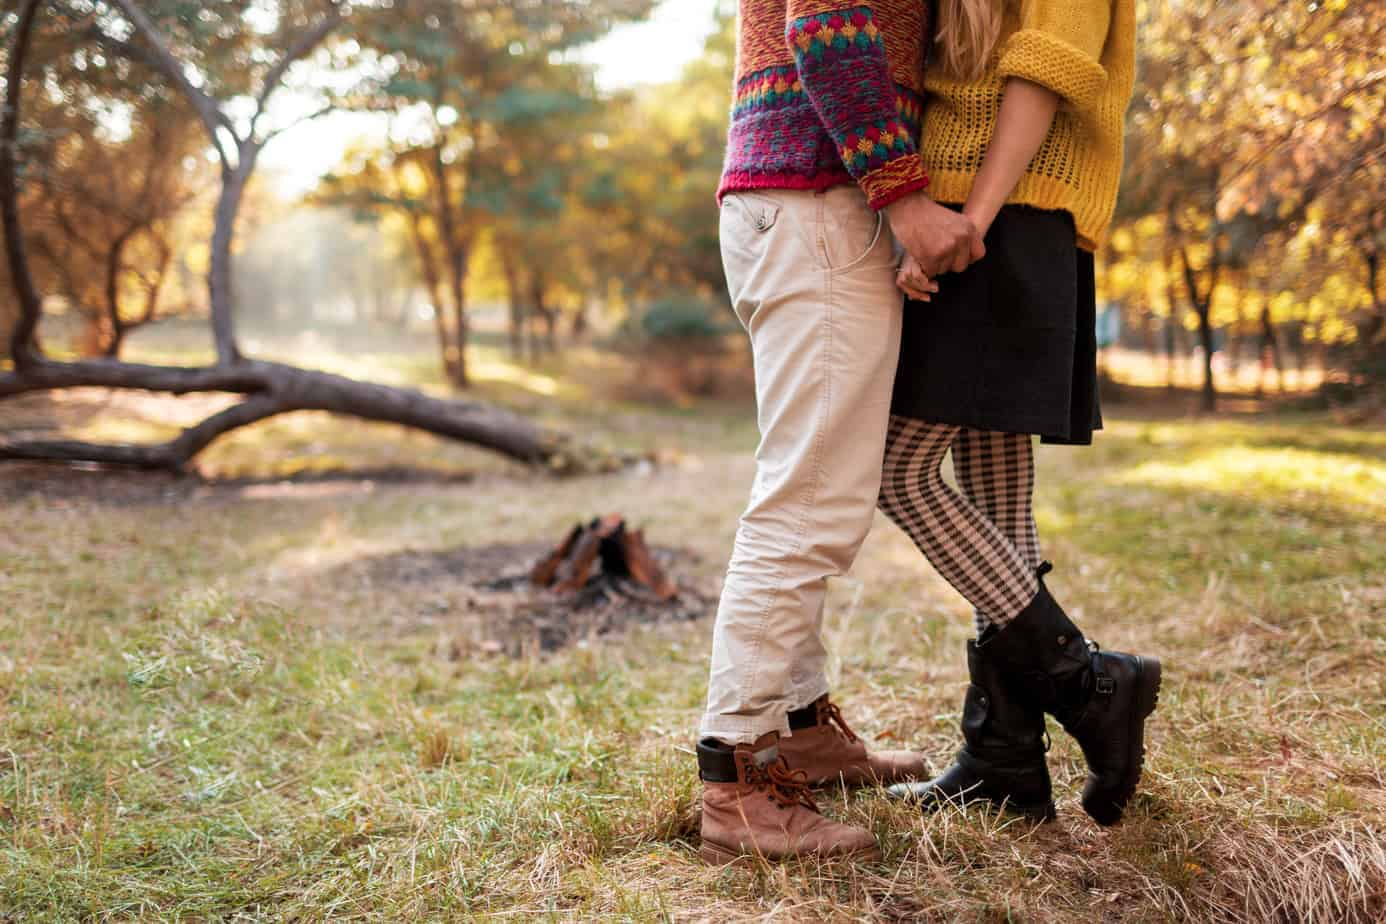 couple standing and holding hands in fall outdoor scene - enjoying romantic getaways in new england